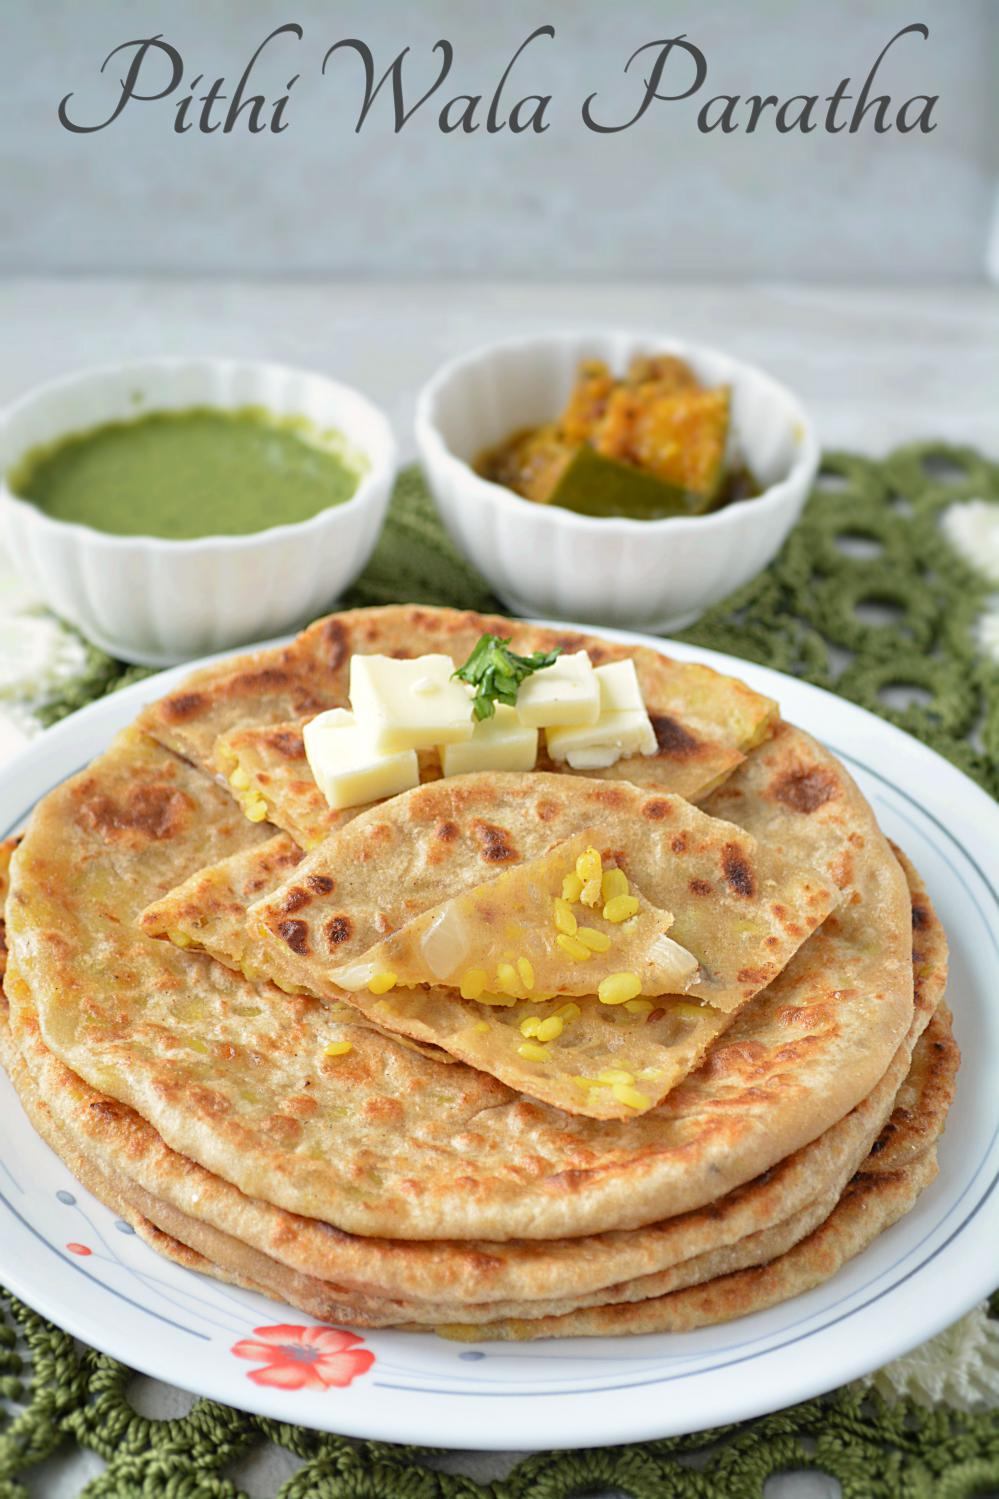 peethi or pithi wala paratha is a lentil stuffed flat bread which is ...